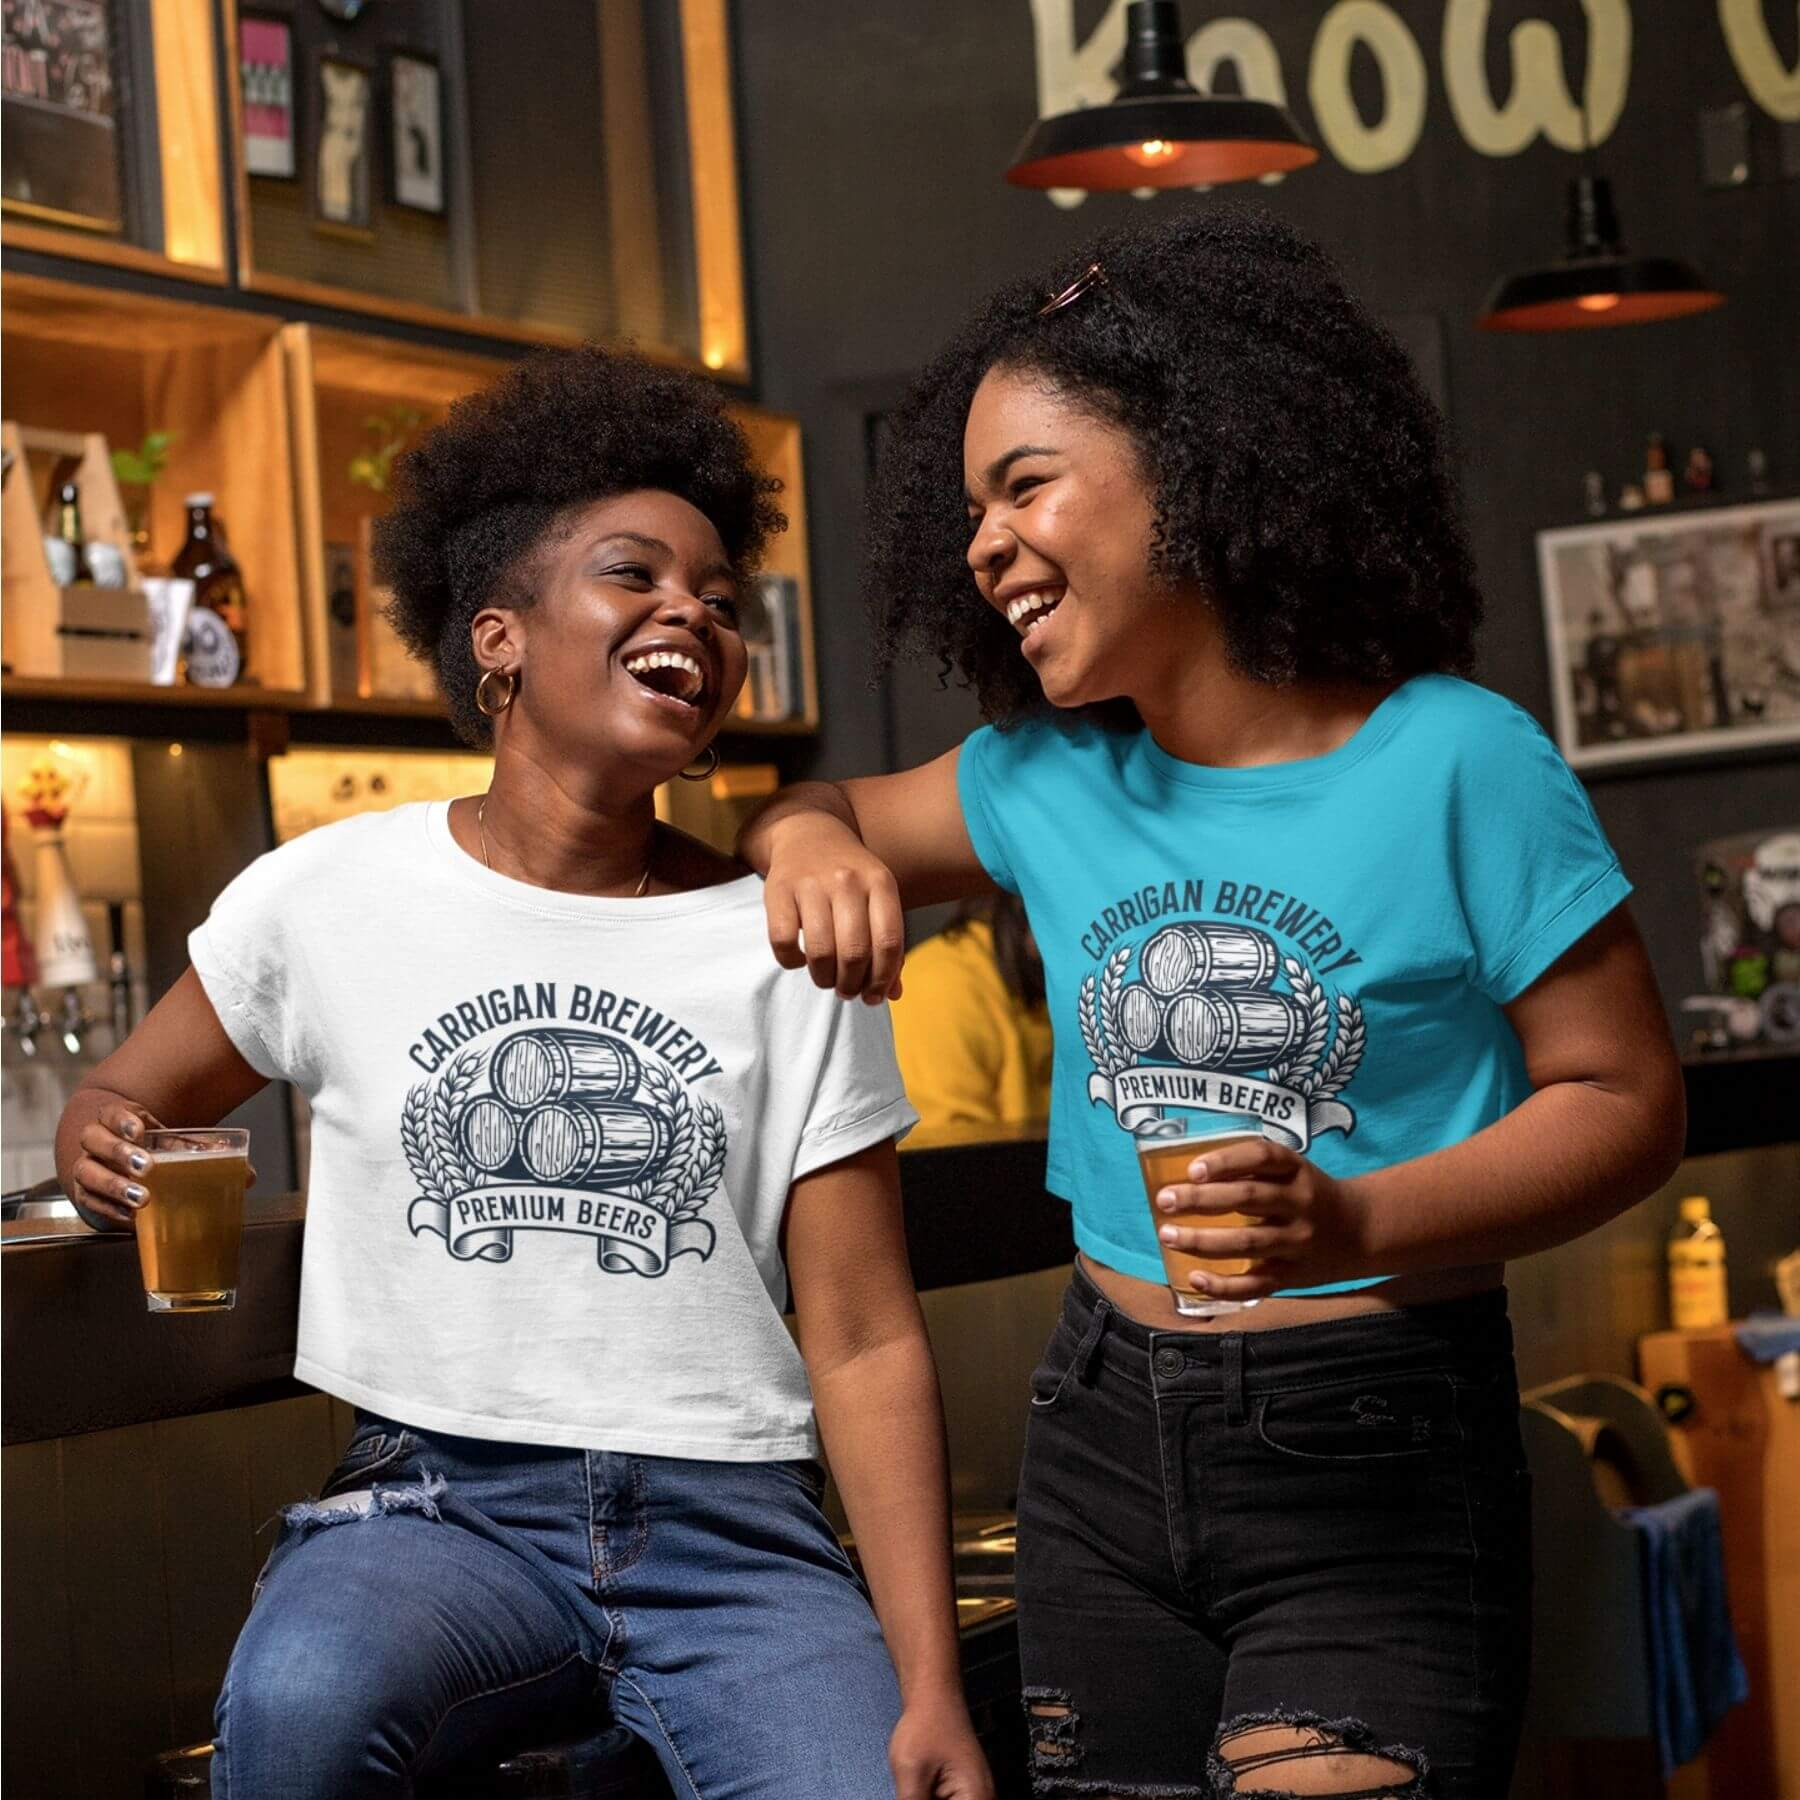 Carrigan Brewery Bright T-shirt Merch Designed by Finnix Solutions